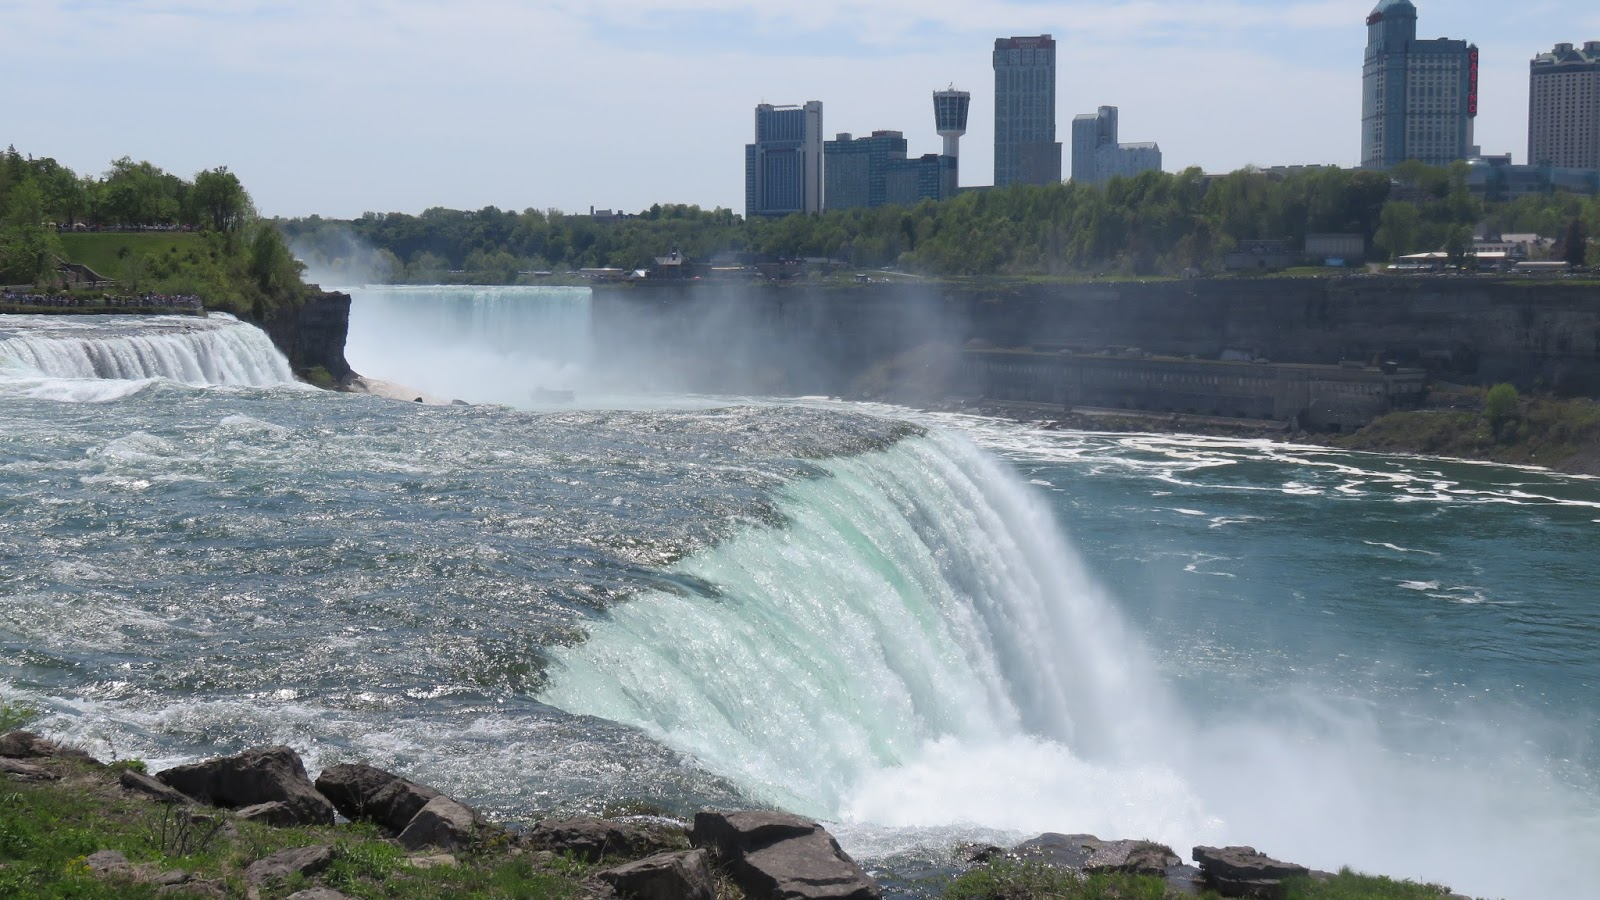 Niagara Falls: description, photo, where it is located 77